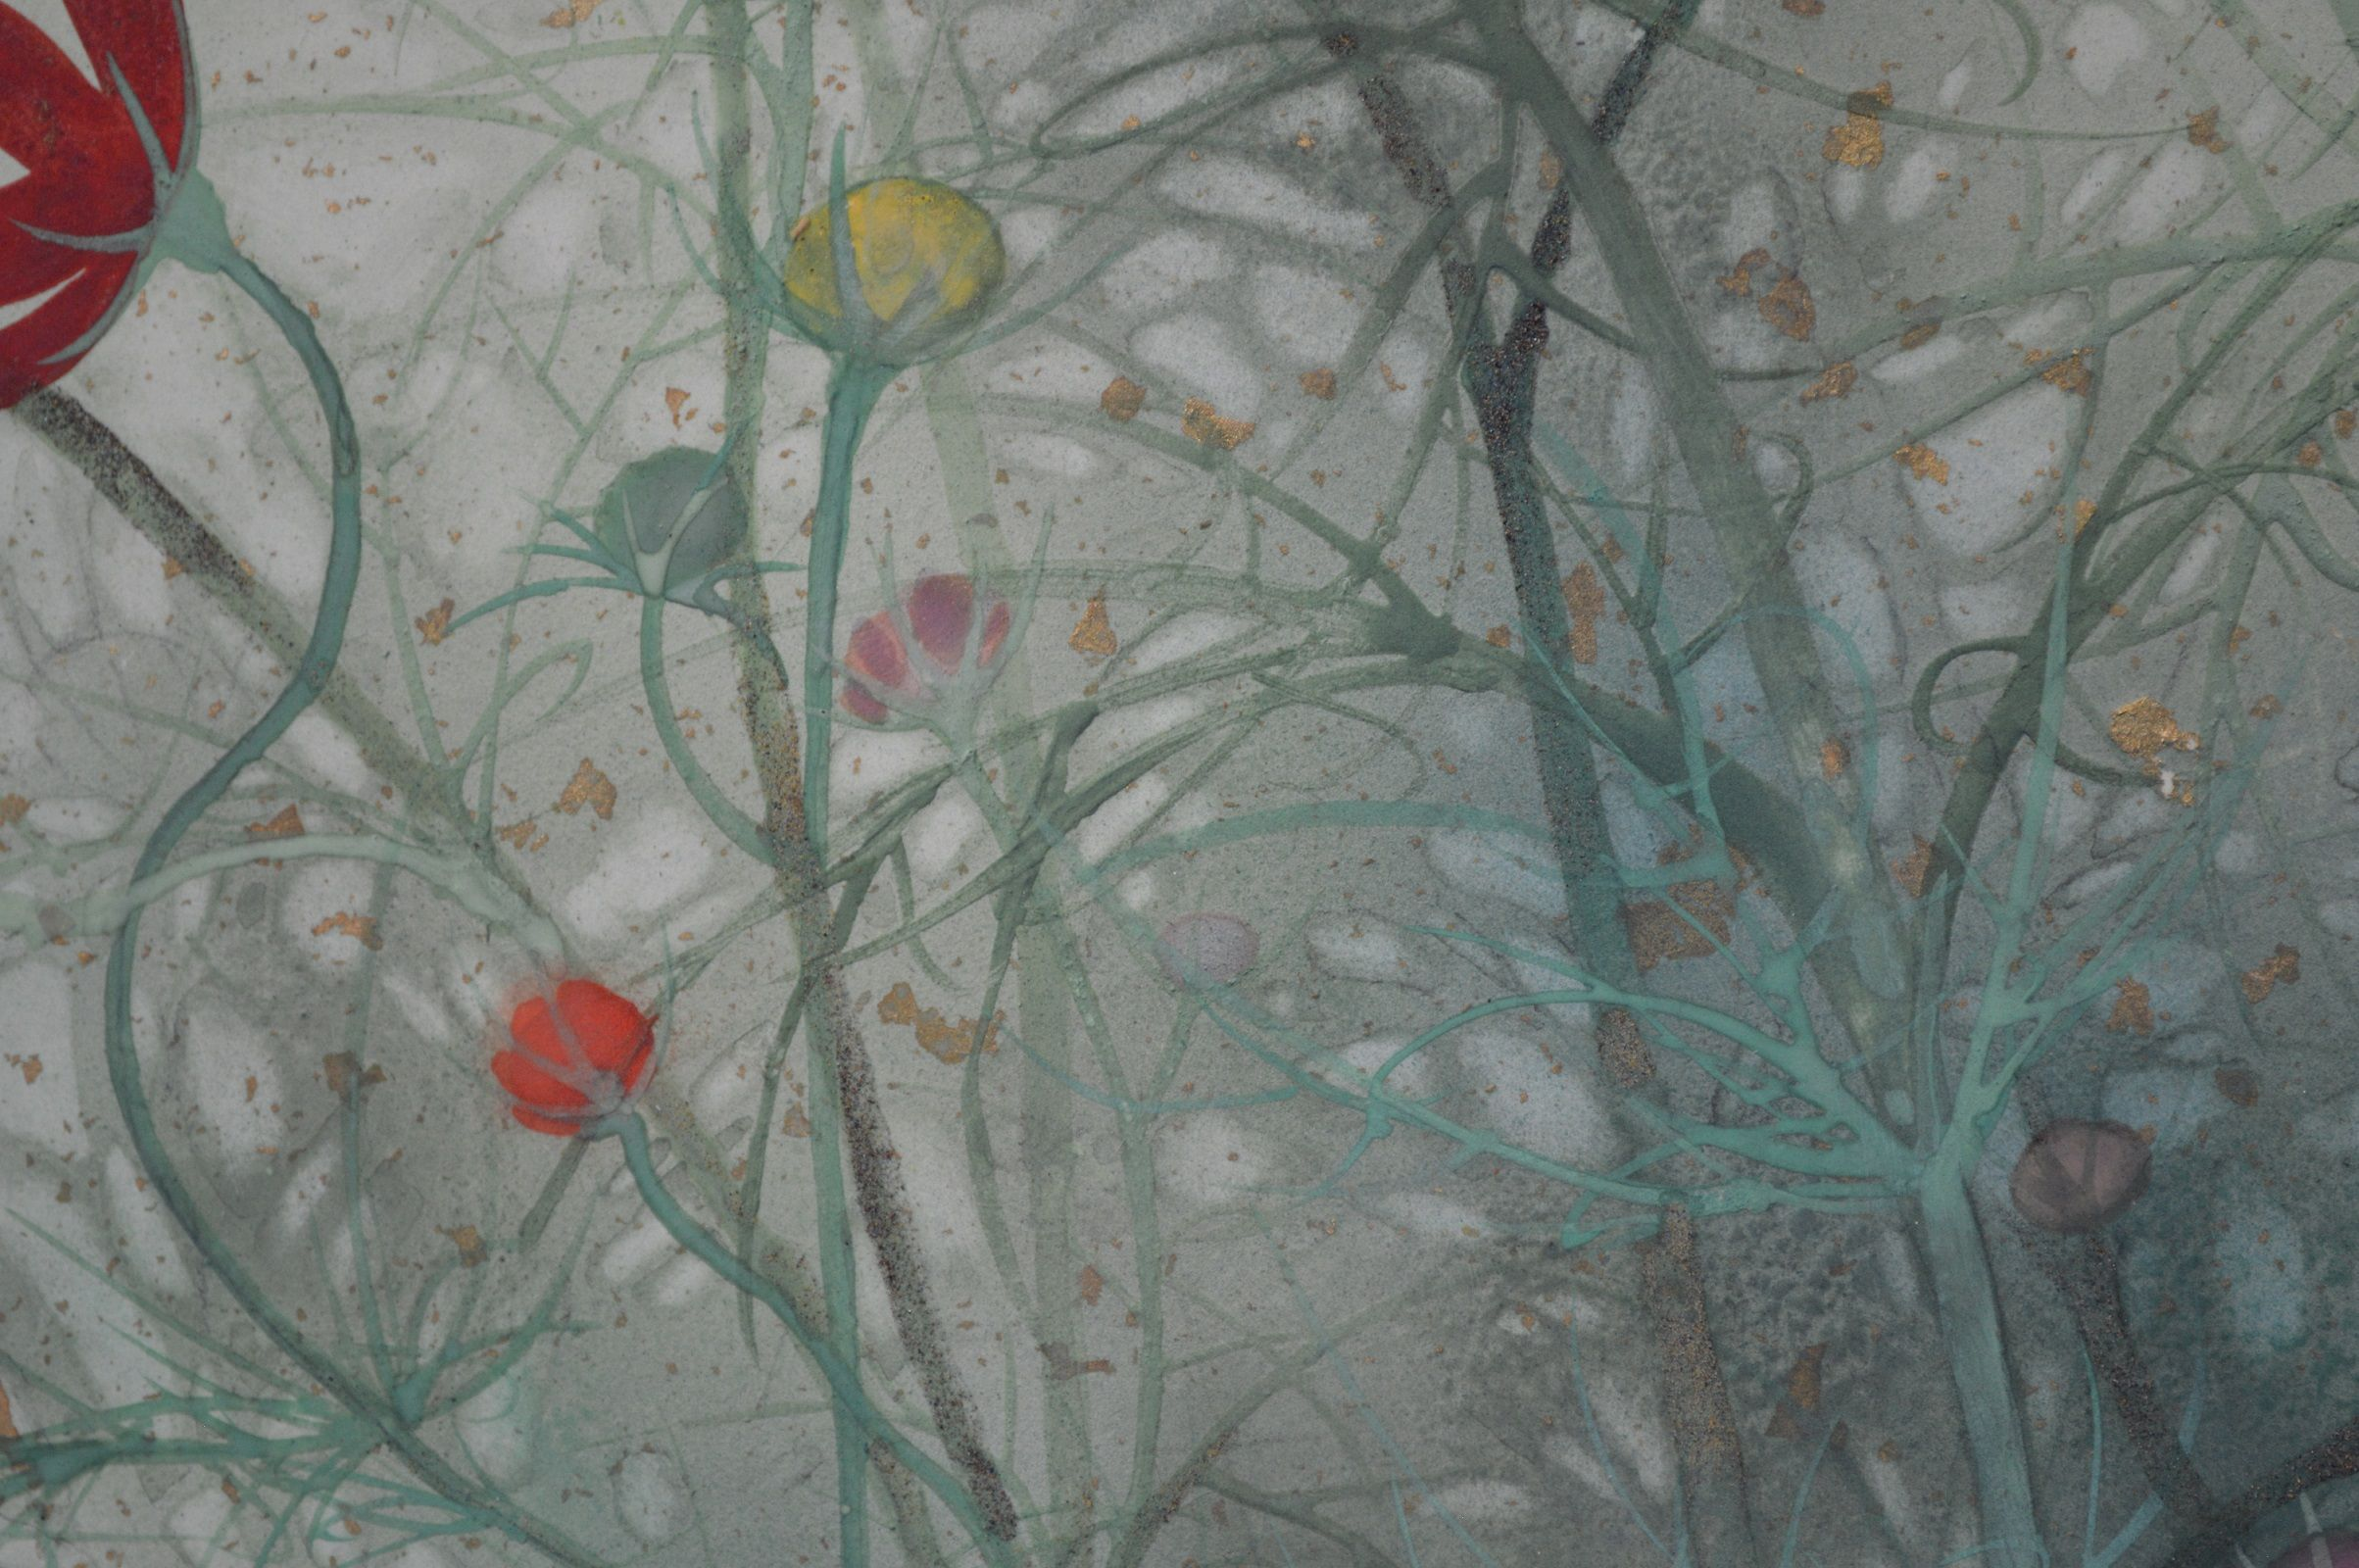 Ronde - Chen Yiching - Contemporary painting - detail 4